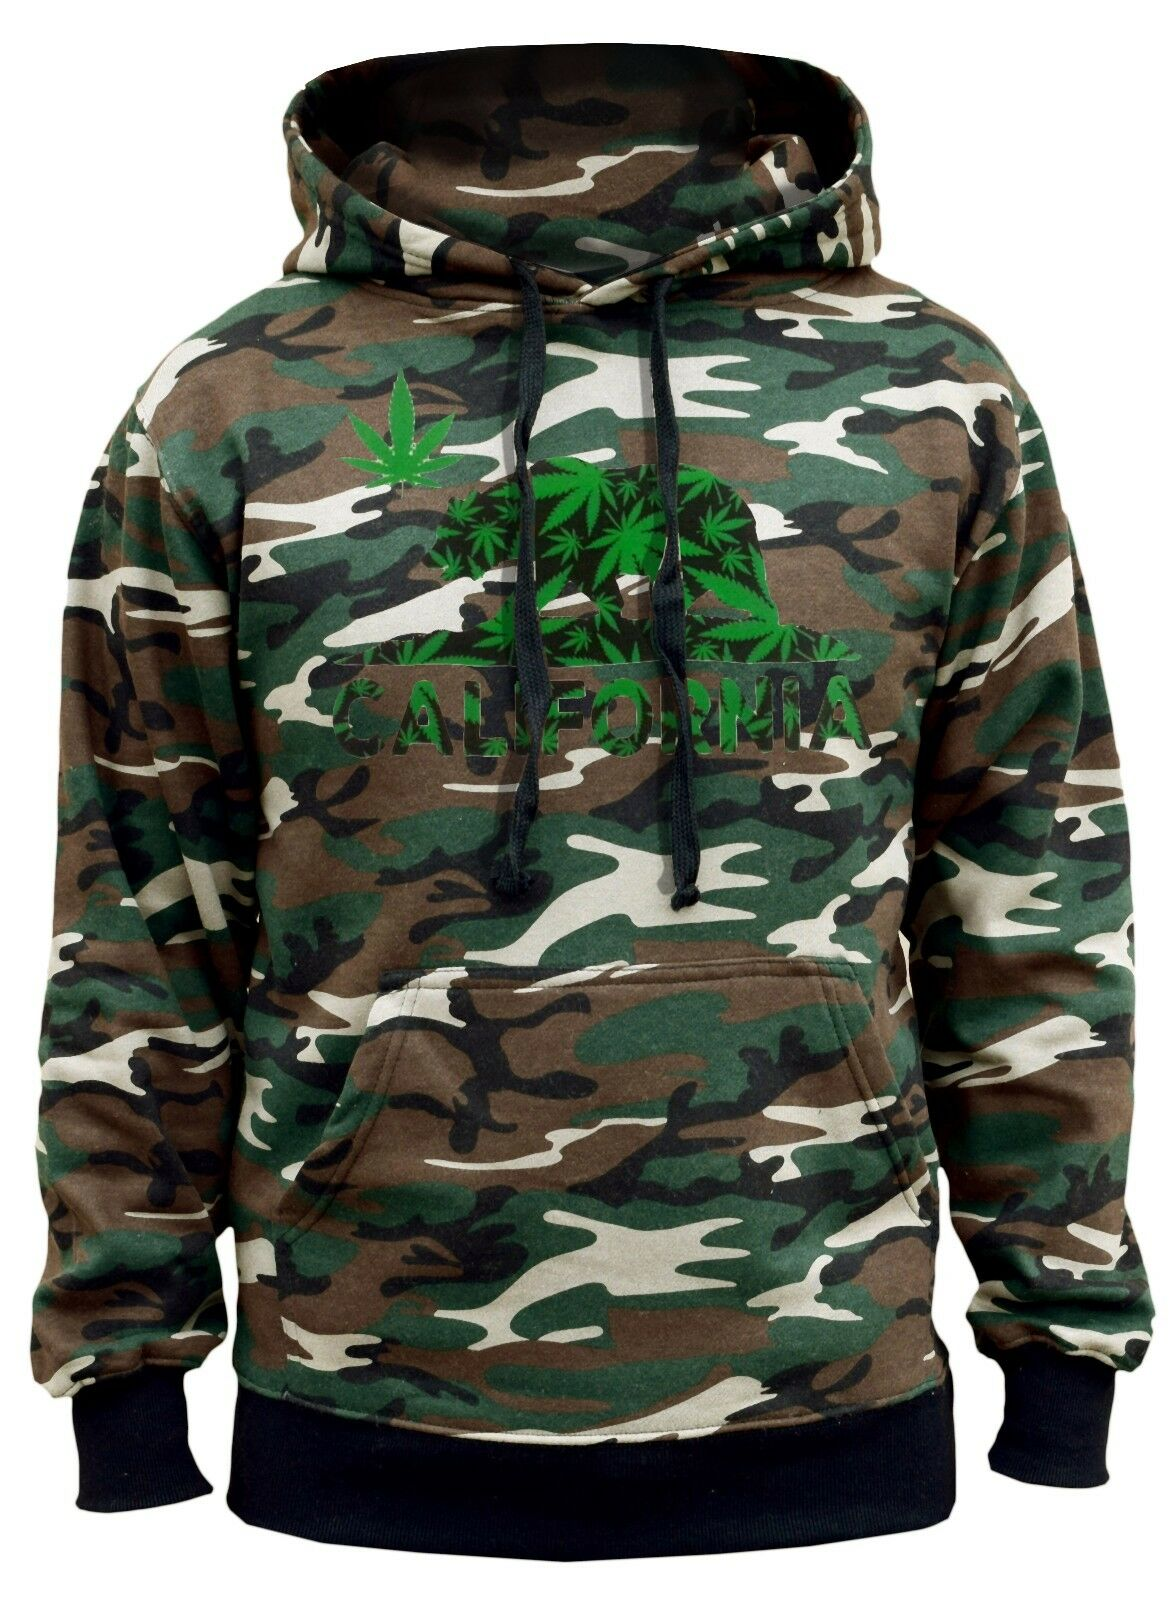 Men's California Republic Weed Leaf Bear Camo Hoodie Cali Life Blunt Marijuana 1